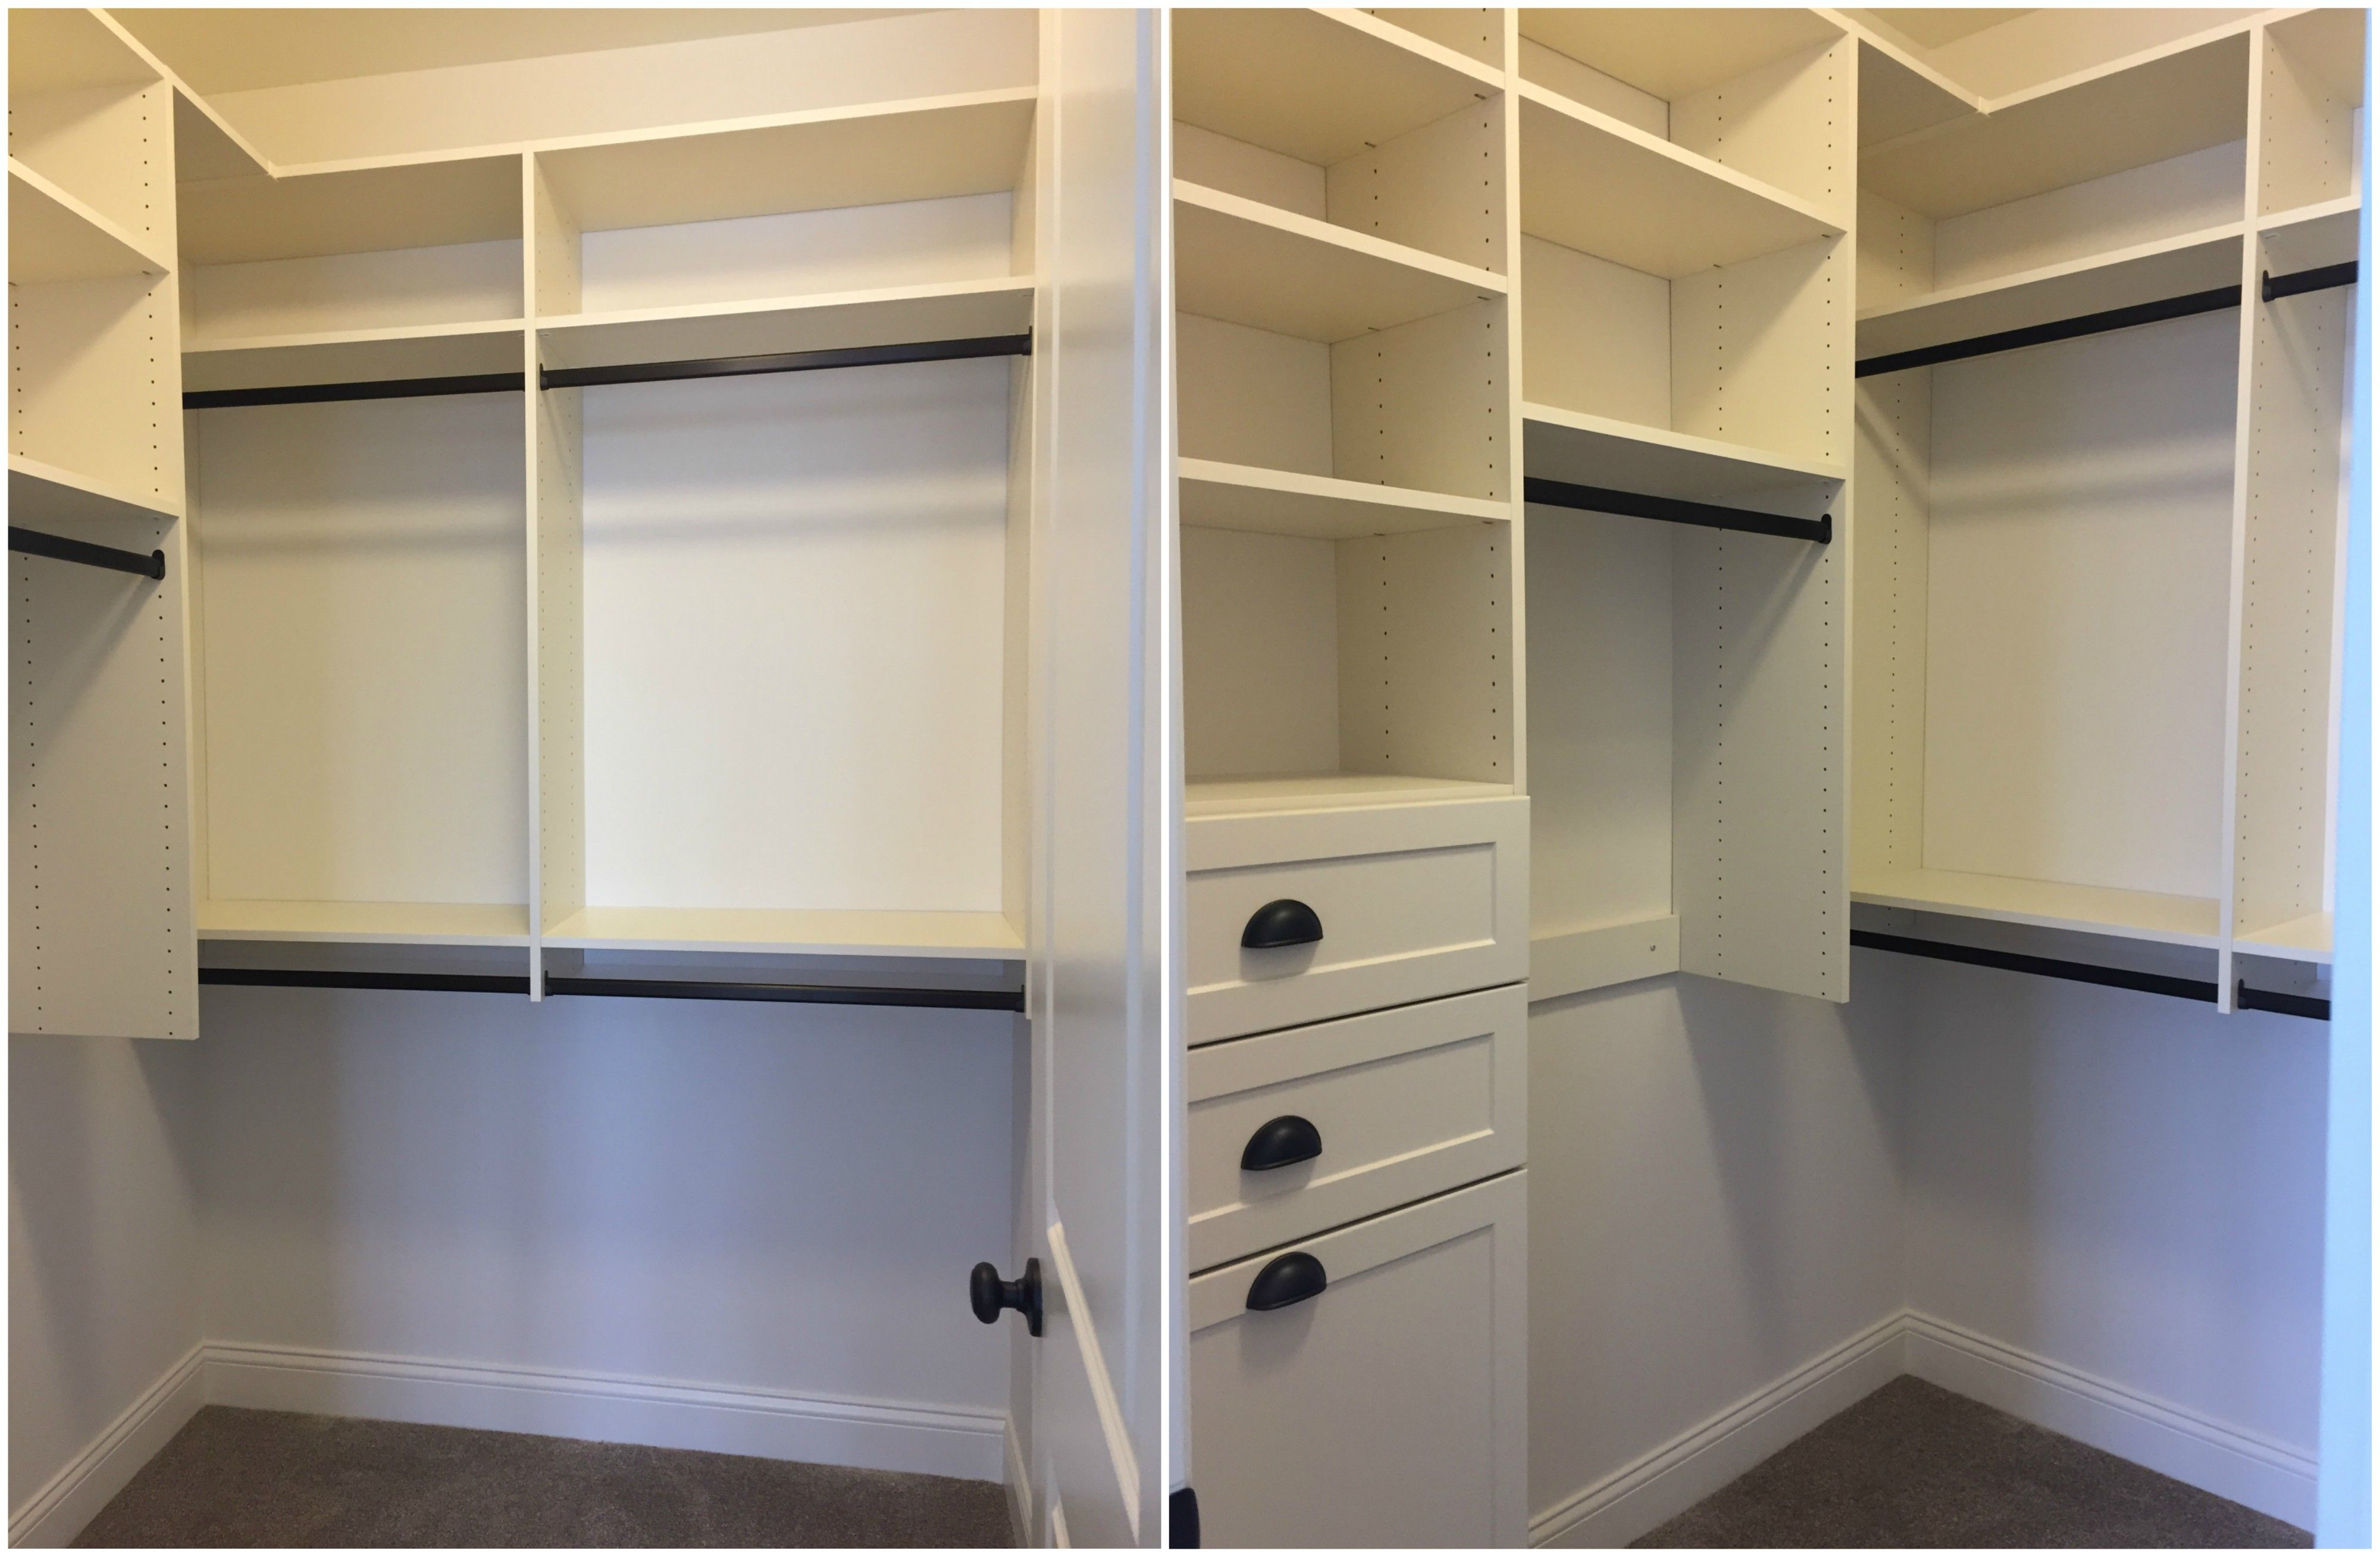 White Melamine Walk In Closet With Adjustable Shelving Double Hang Long Hang Drawers And Pull Out Hamper Dra Adjustable Shelving Walk In Closet Double Hung